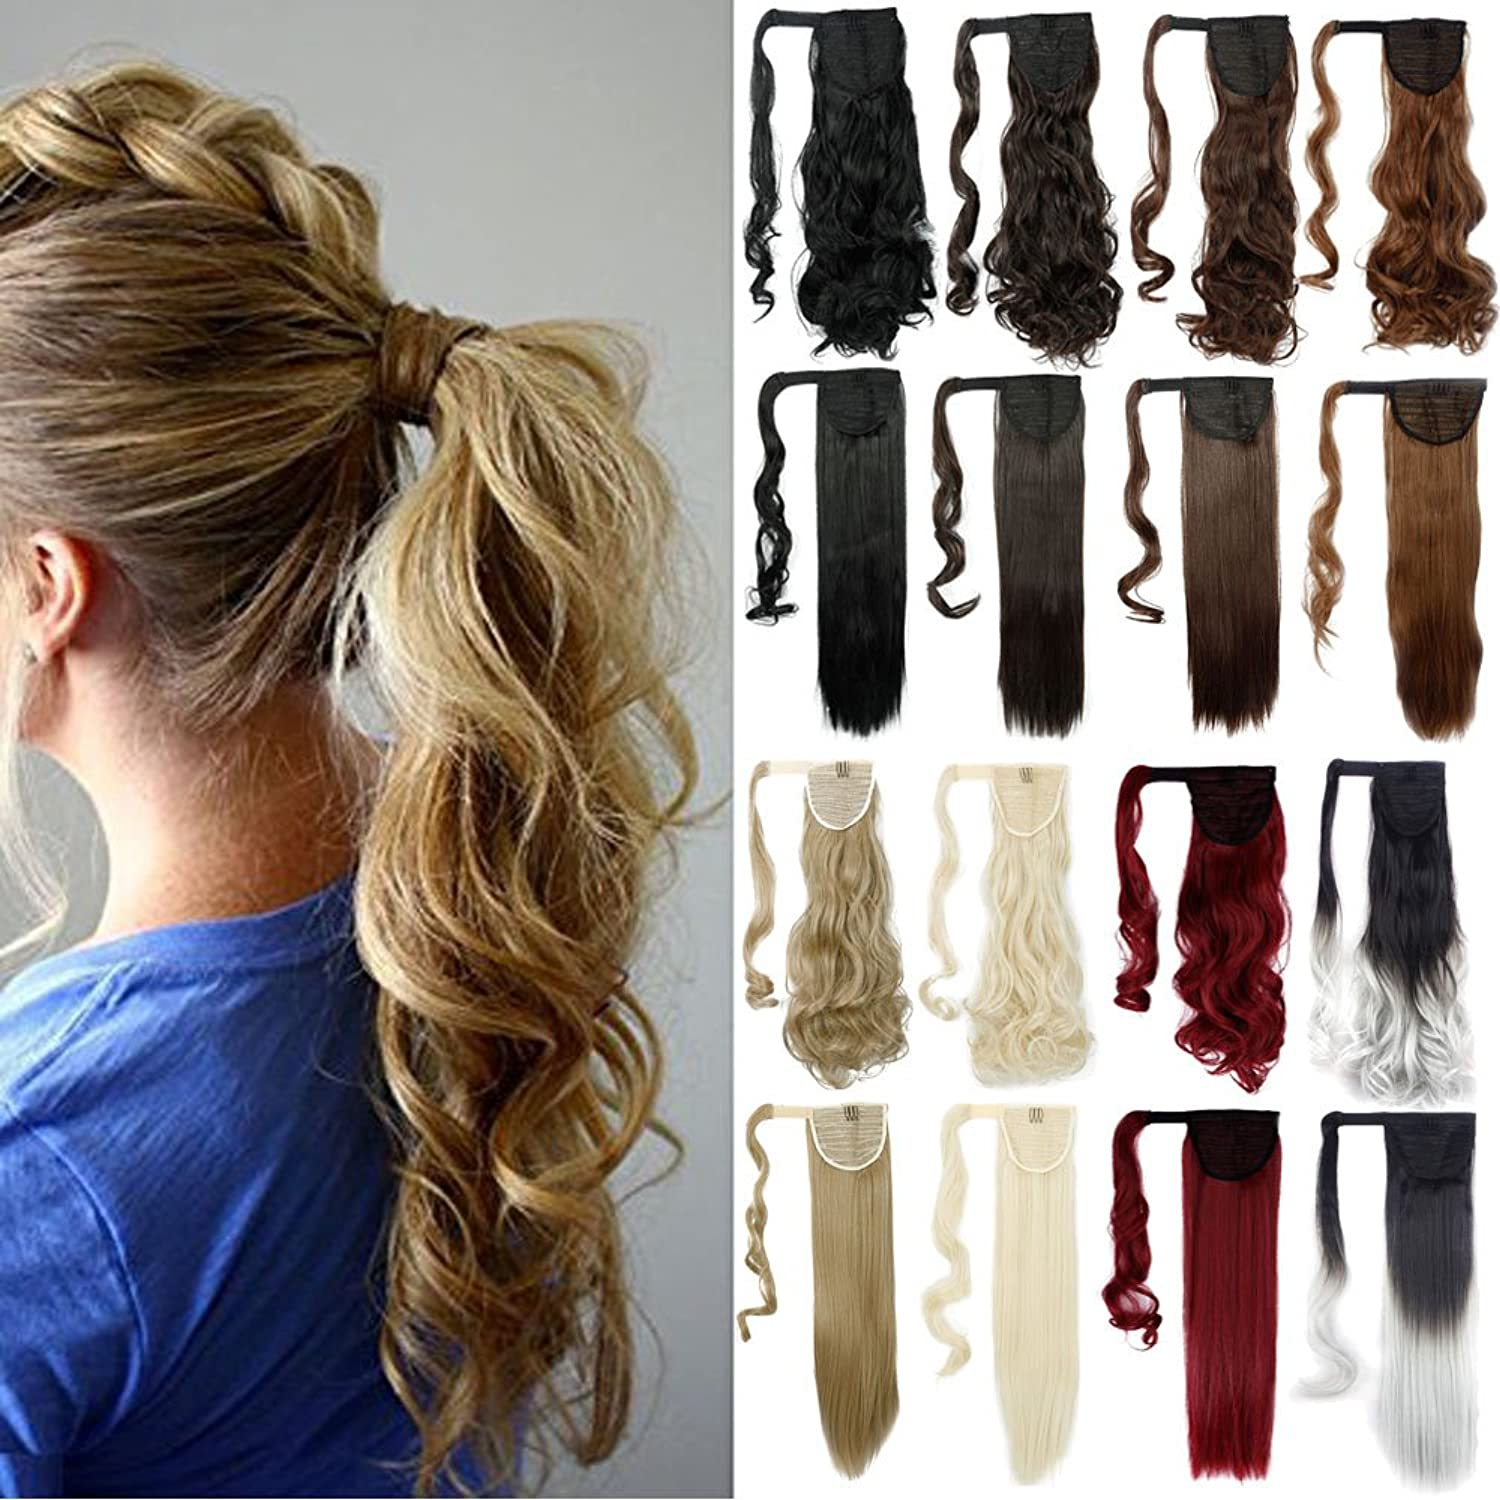 Amazon best sellers best hair extensions lelinta 3 5 days delivery wrap around synthetic ponytail clip in hair extensions one piece solutioingenieria Image collections